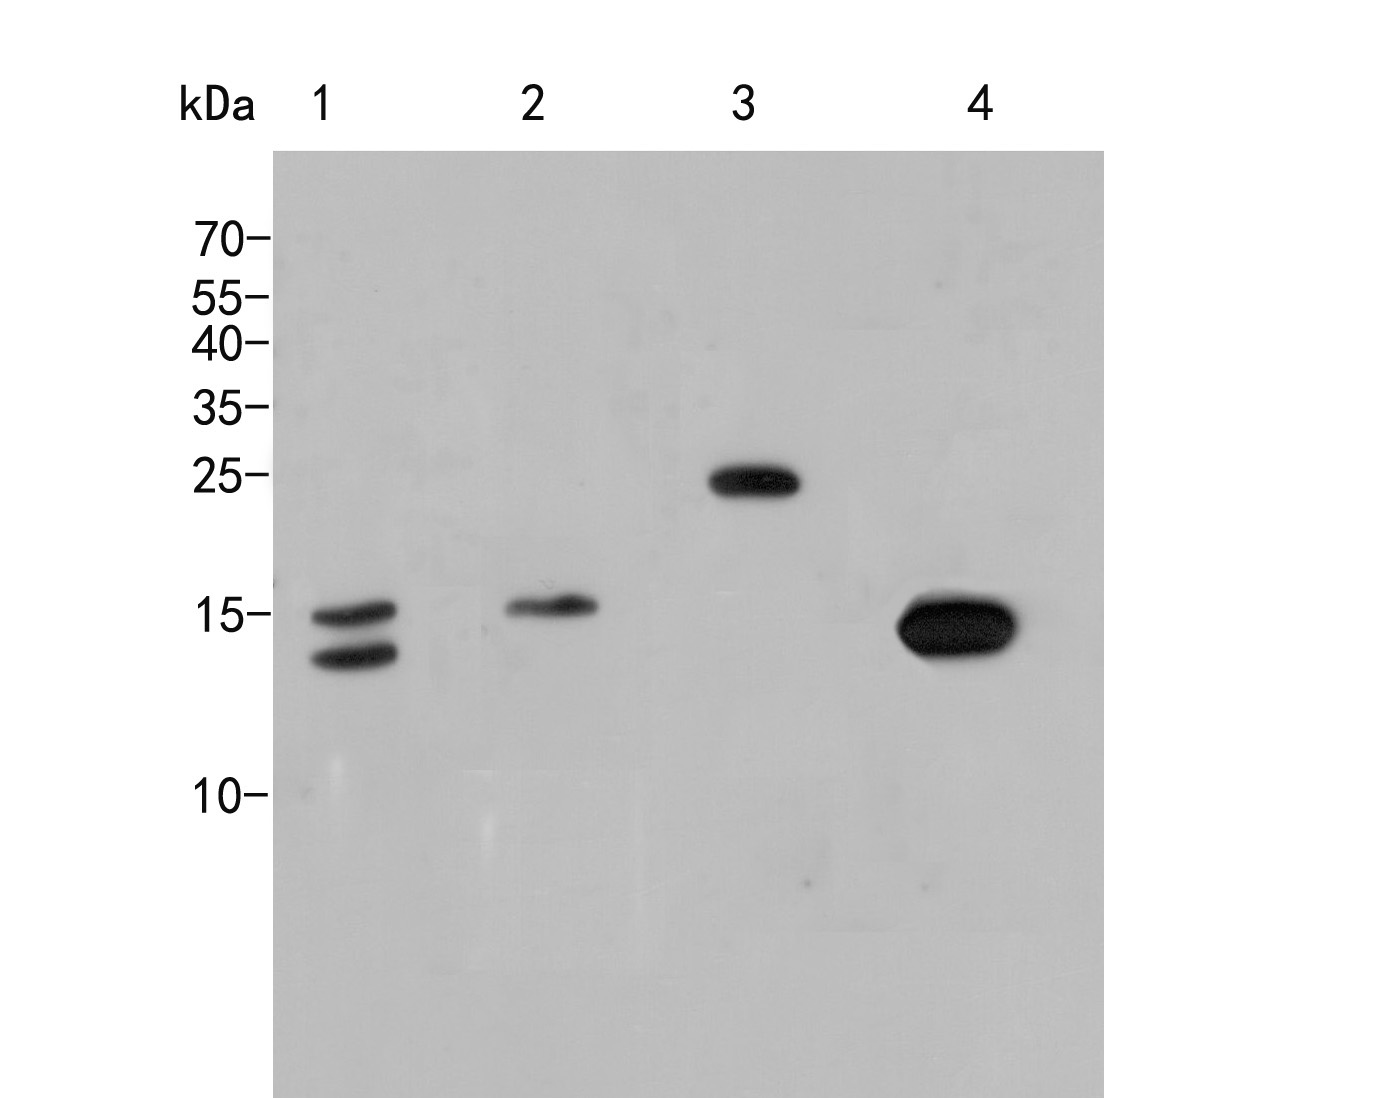 Western blot analysis of Histone H3 on different lysates. Proteins were transferred to a PVDF membrane and blocked with 5% NFDM/TBST for 1 hour at room temperature. The primary antibody (HA500298, 1/1000) was used in 5% NFDM/TBST at room temperature for 2 hours. Goat Anti-Rabbit IgG - HRP Secondary Antibody (HA1001) at 1:5,000 dilution was used for 1 hour at room temperature.<br /> Positive control: <br /> Lane 1: Hela cell lysate<br /> Lane 2: NIH/3T3 cell lysate<br /> Lane 3: Rice tissue lysate<br /> Lane 4: Zebrafish tissue cell lysate